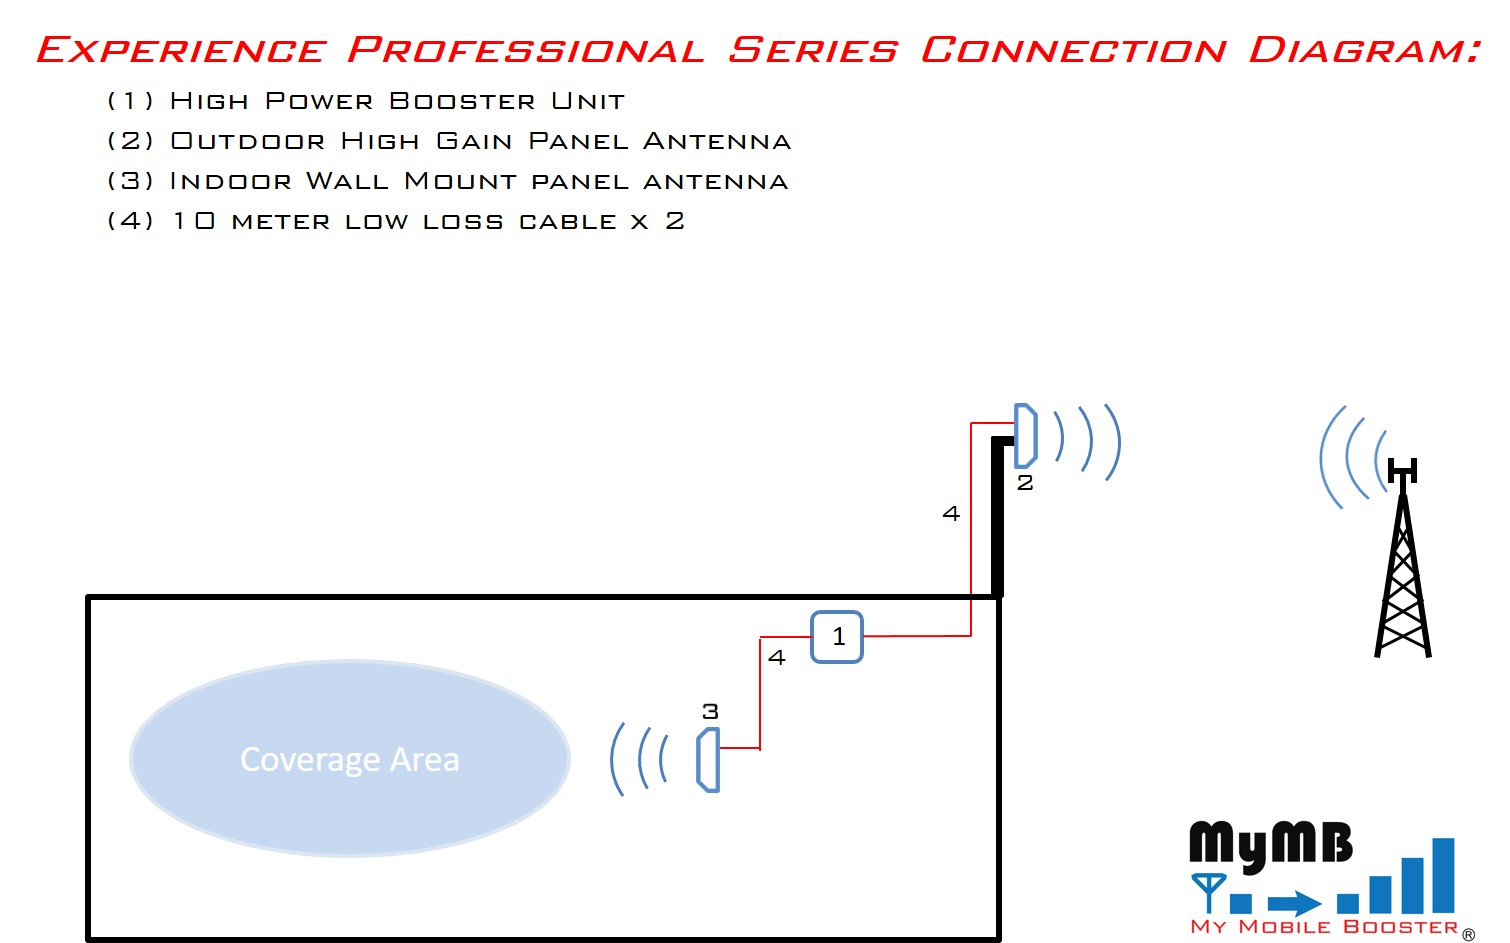 Experience Professional Series Connection